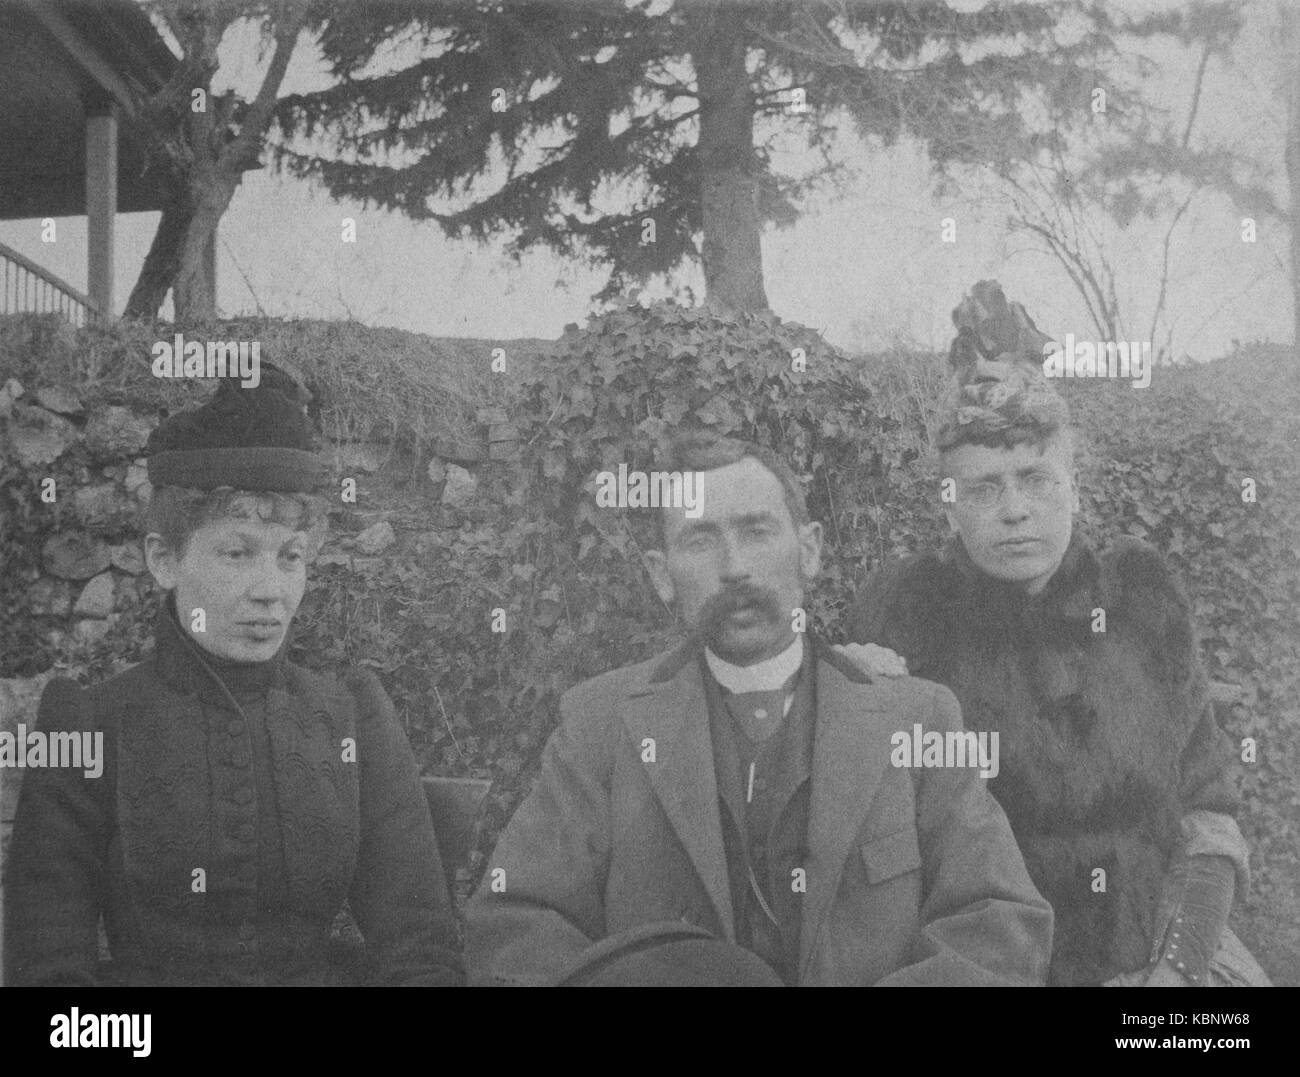 American archive monochrome version of cyanotype portrait photograph of a man with moustache and two ladies sitting - Stock Image